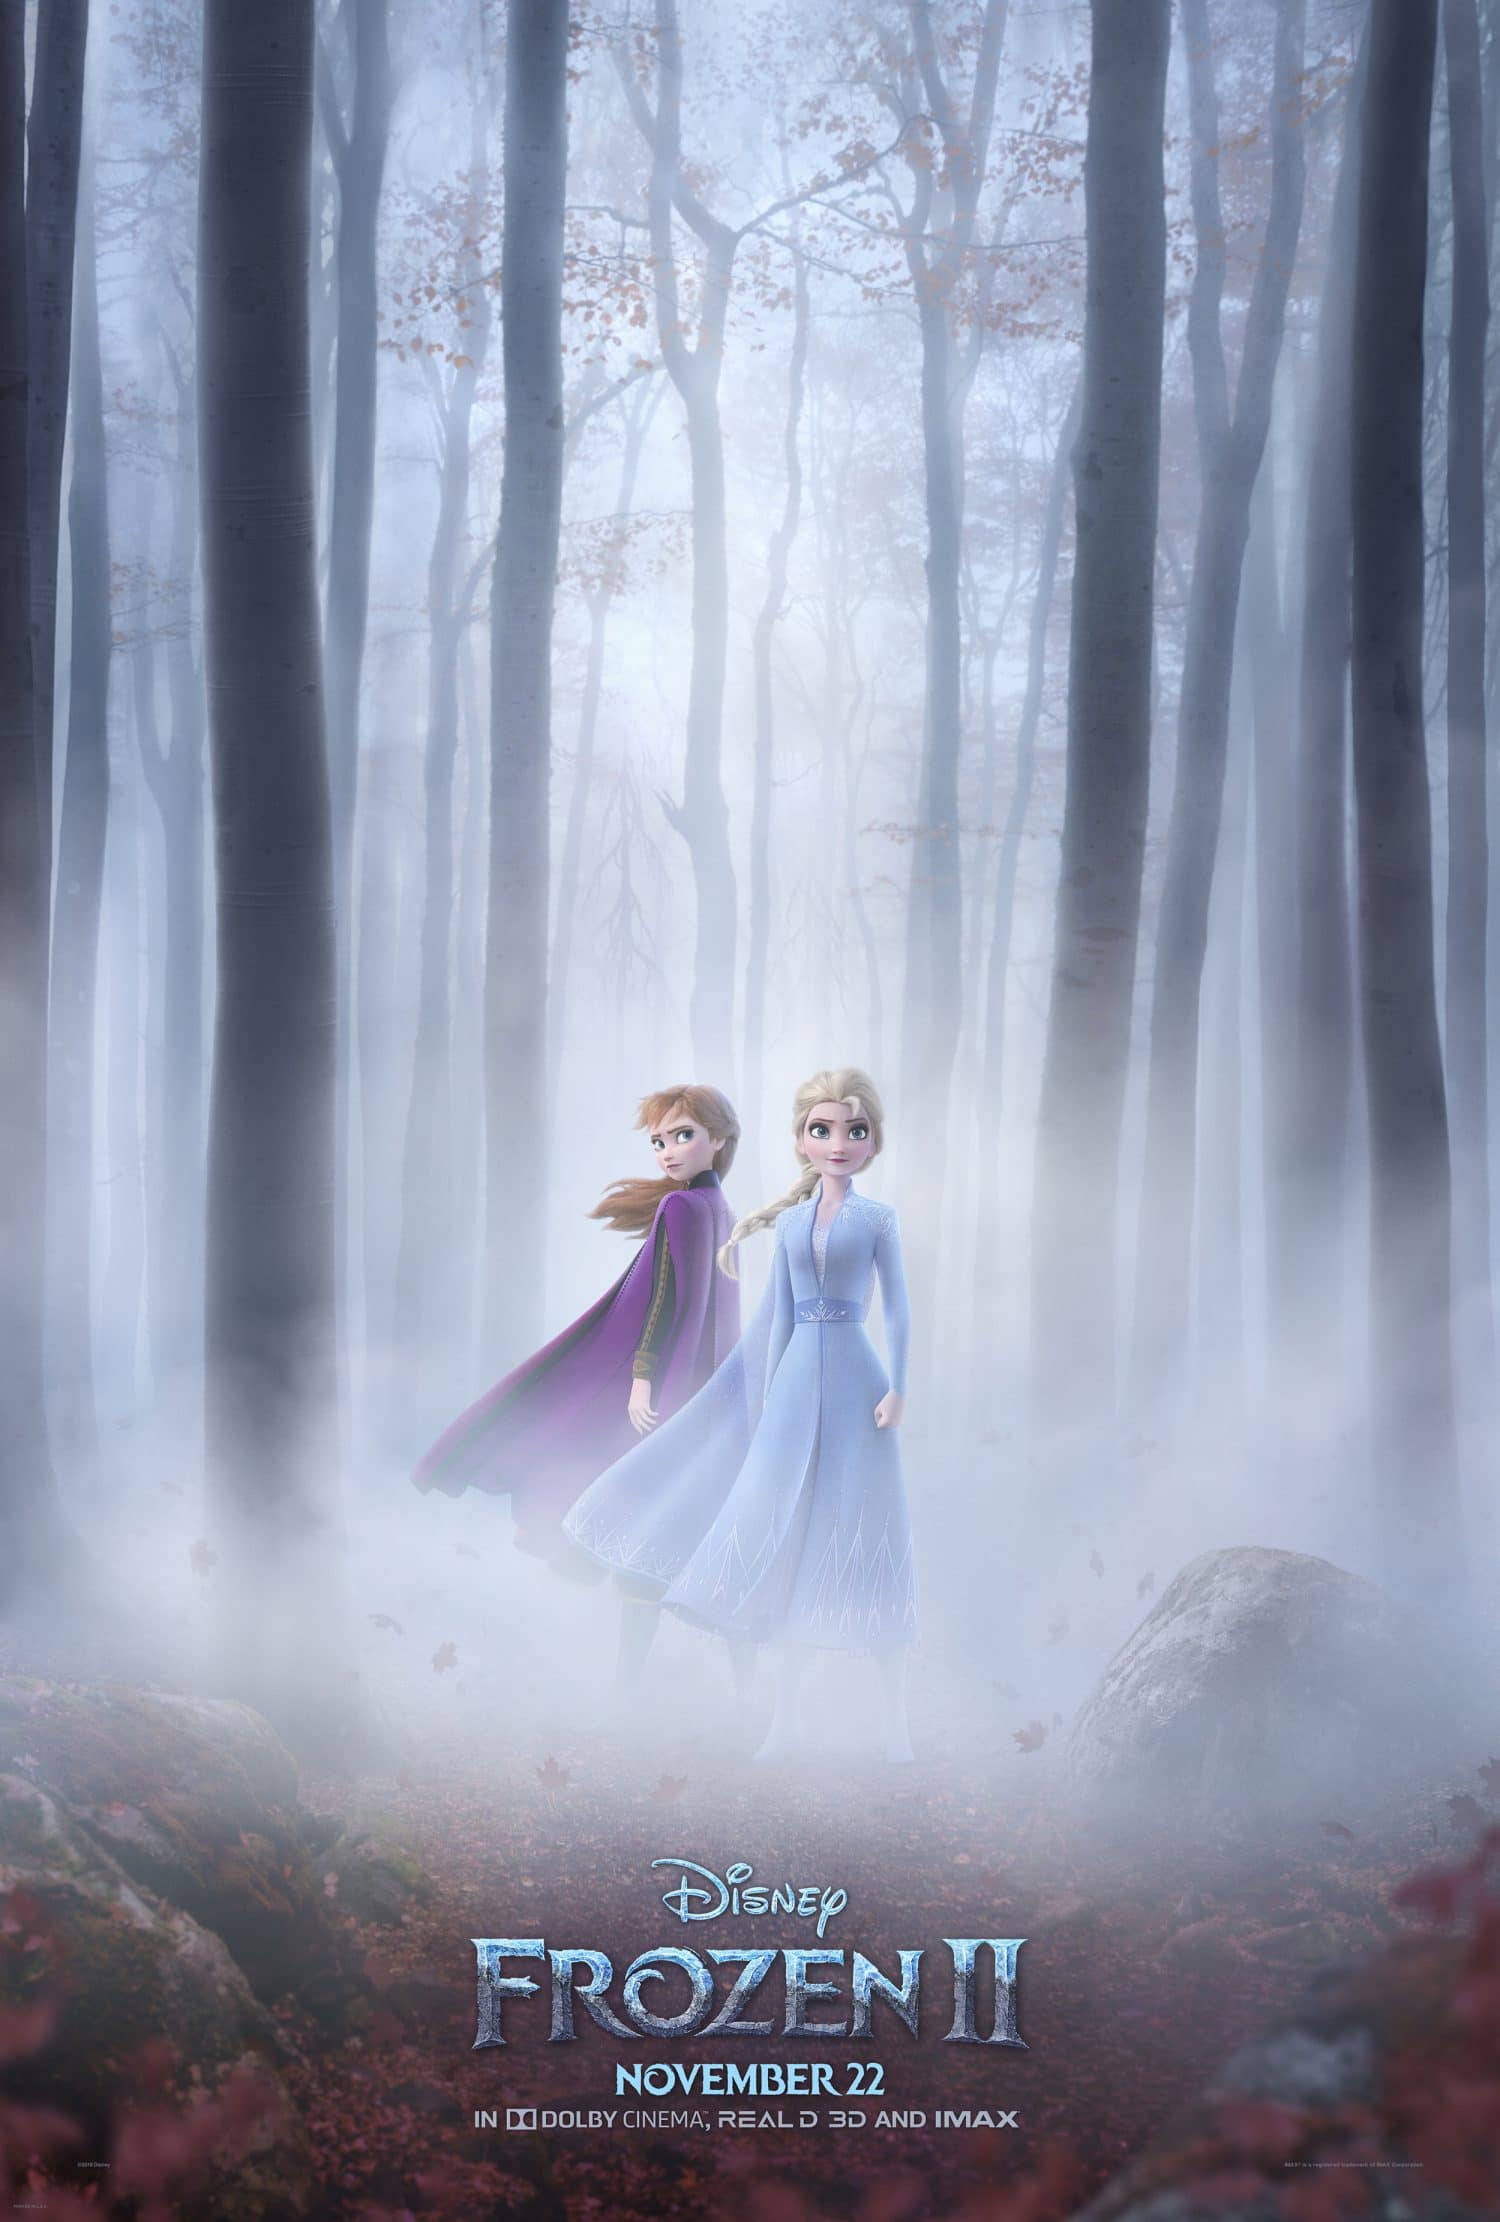 Take a look at Anna and Elsa on a new Frozen II movie poster.